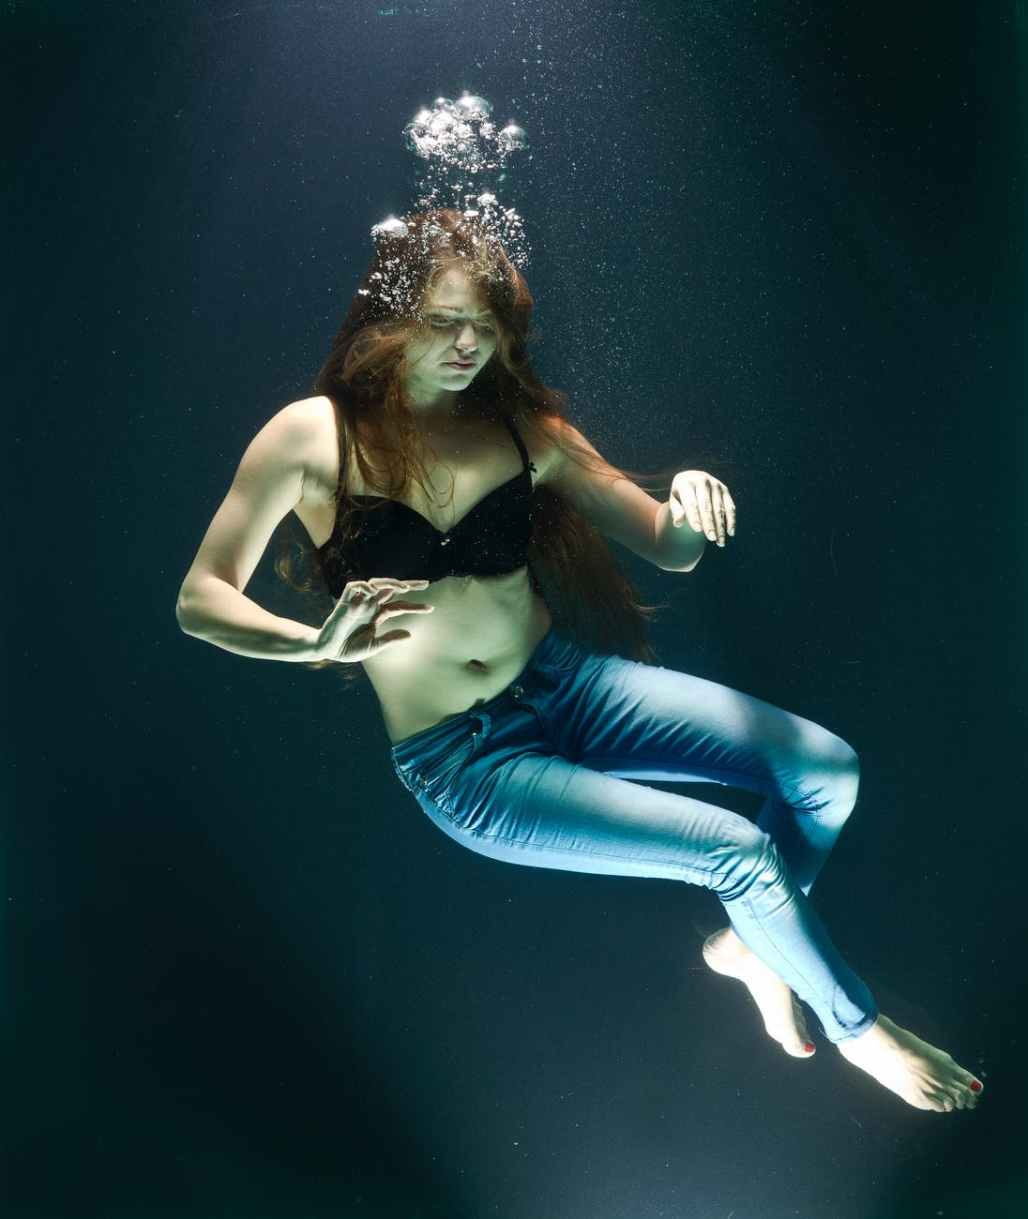 woman wearing black brassiere sinking on the body of water photography